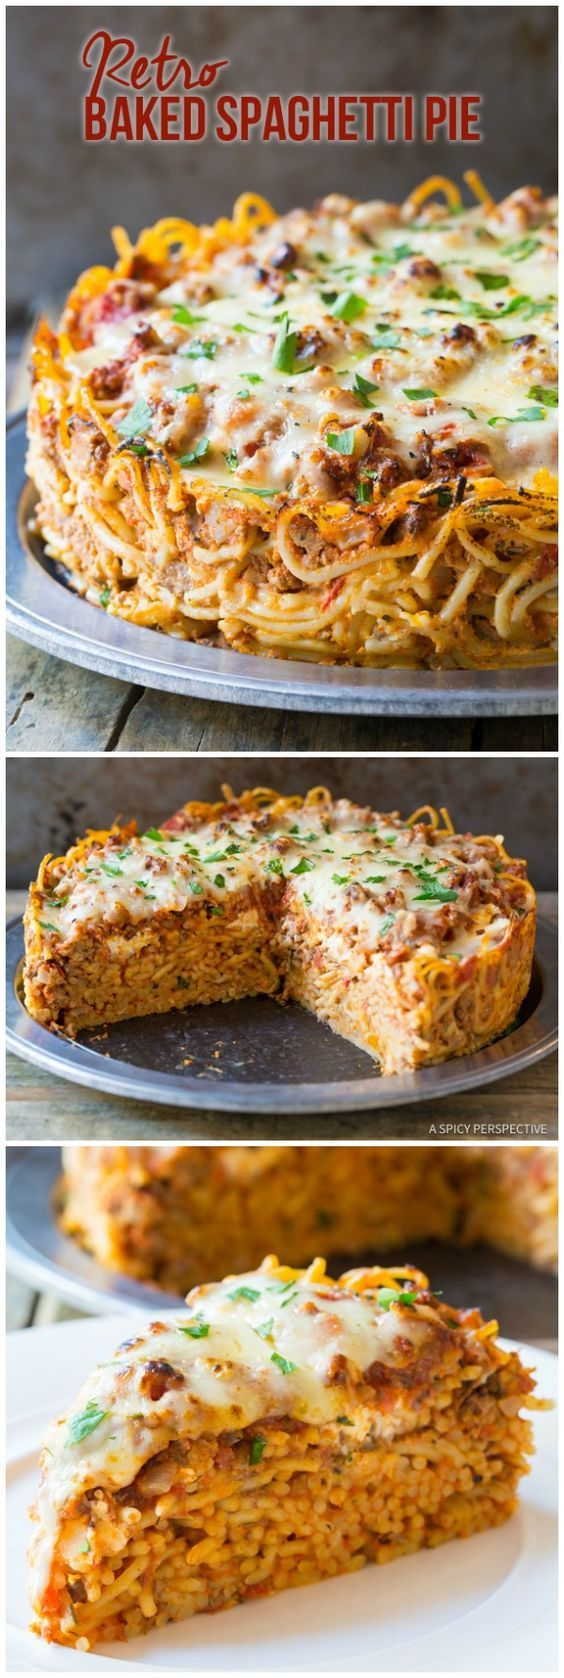 Retro Baked Spaghetti Pie Recipe | ASpicyPerspective.com #retro